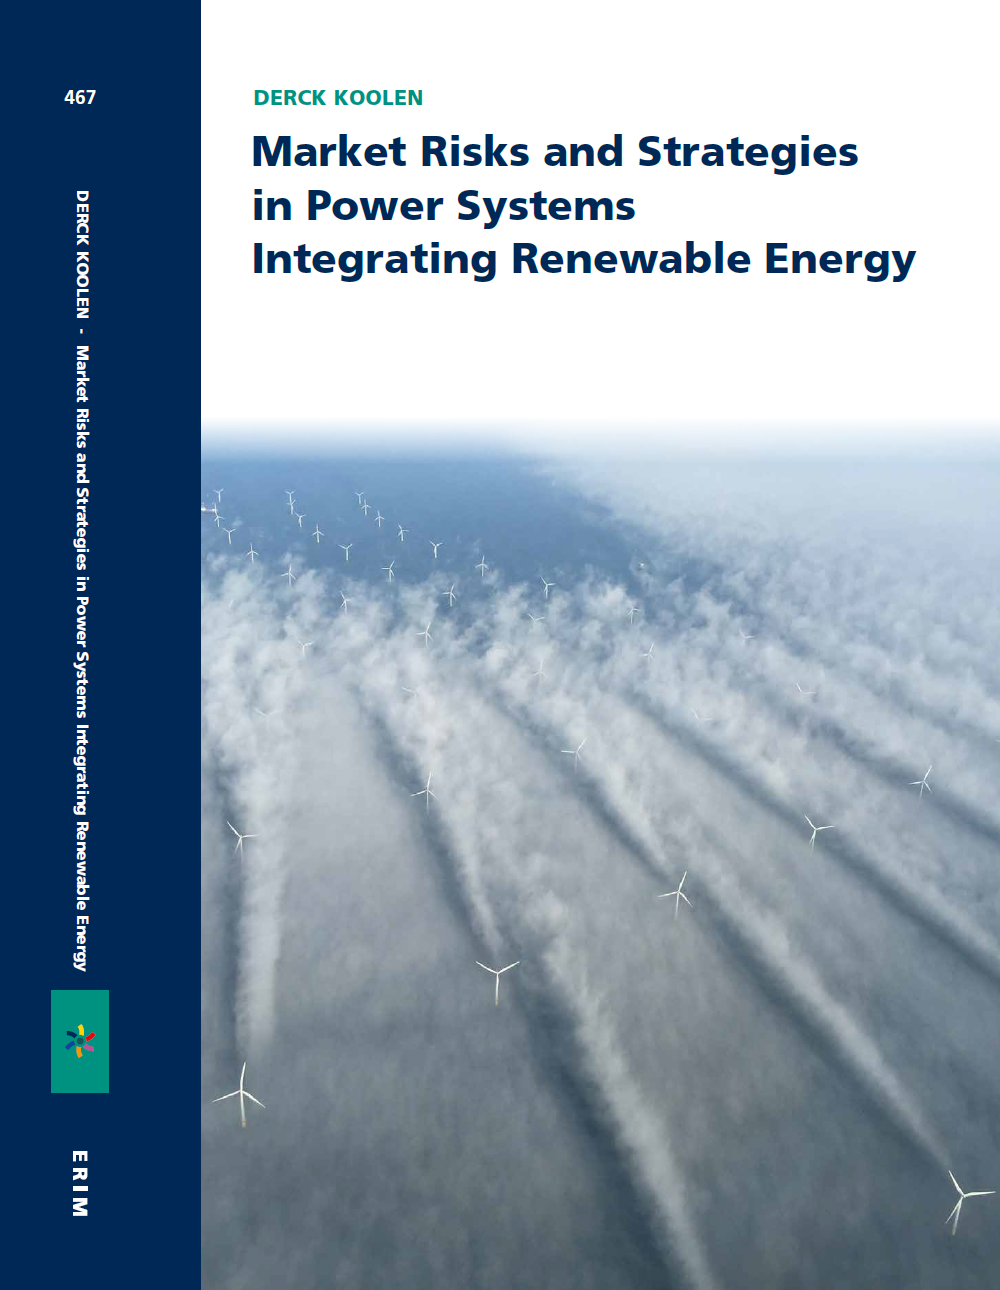 Market Risks and Strategies in Power Systems Integrating Renewable Energy